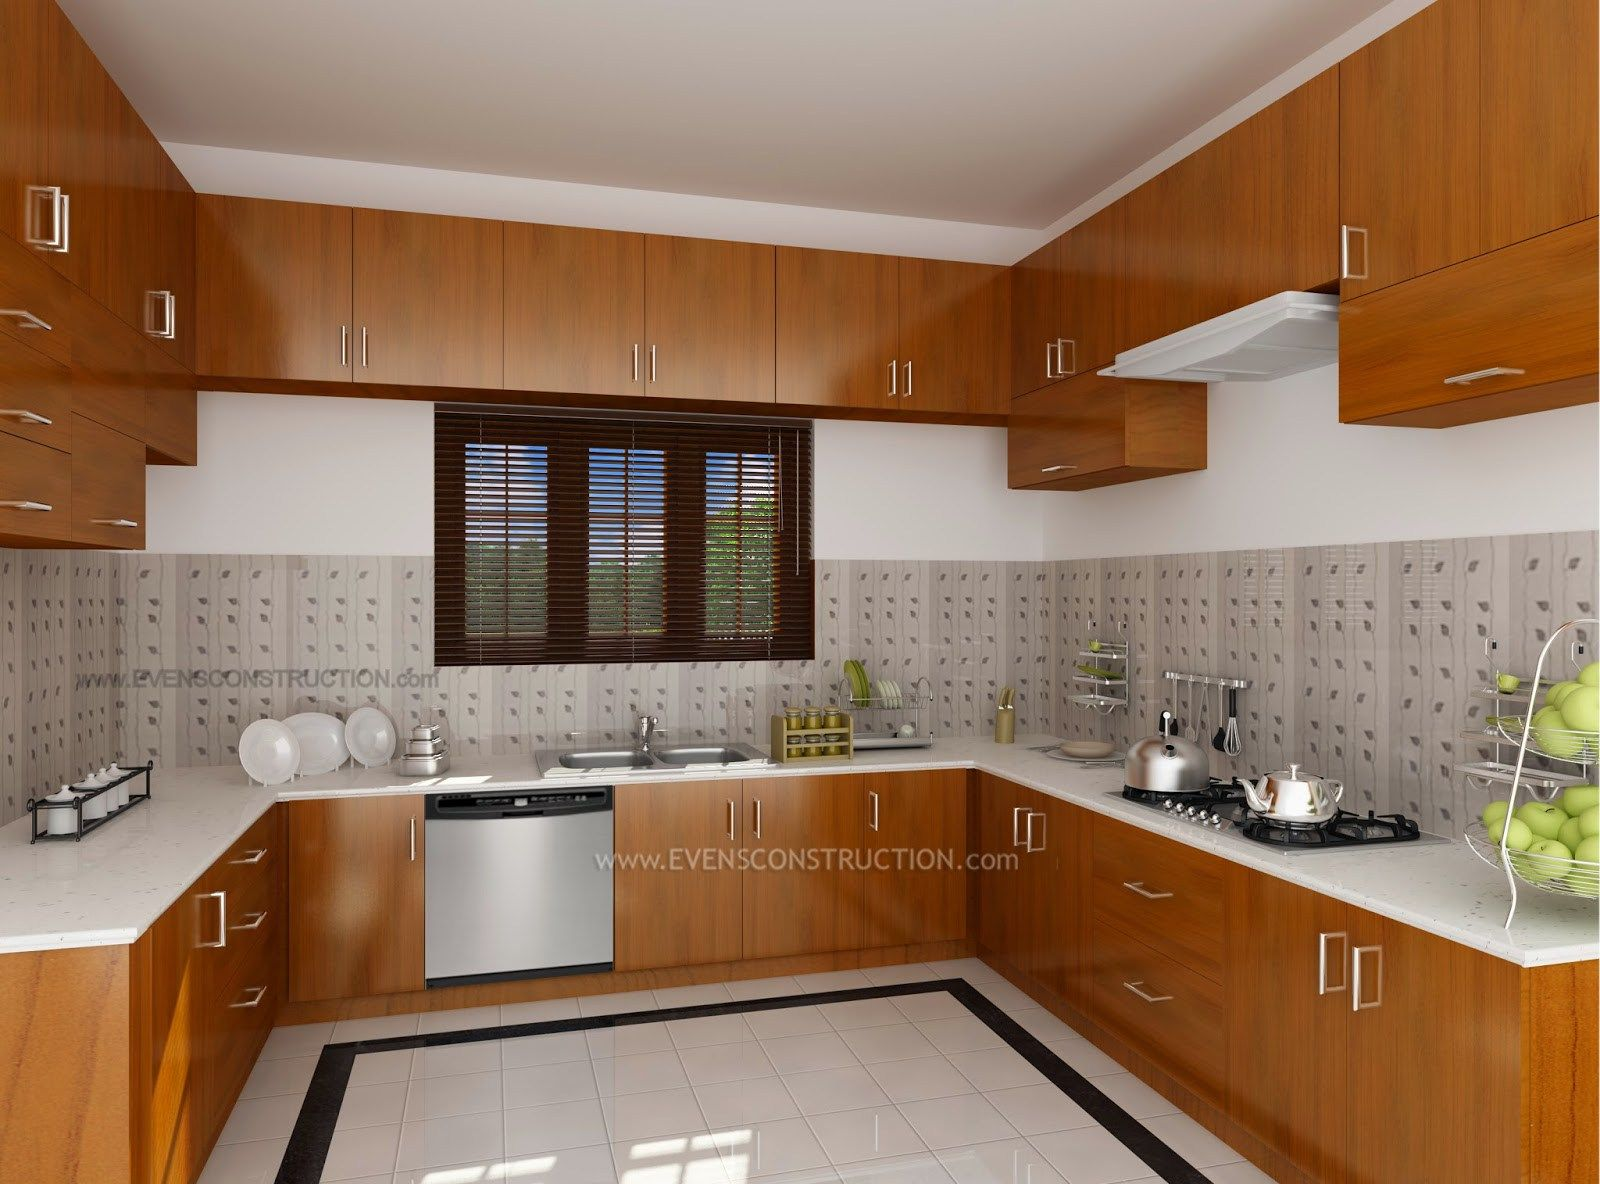 Kerala Home Kitchen Designs Kerala Home Design Interior Kitchen Home Kitchen Interior Design House Design Kitchen Interior Design Kitchen Simple Kitchen Design